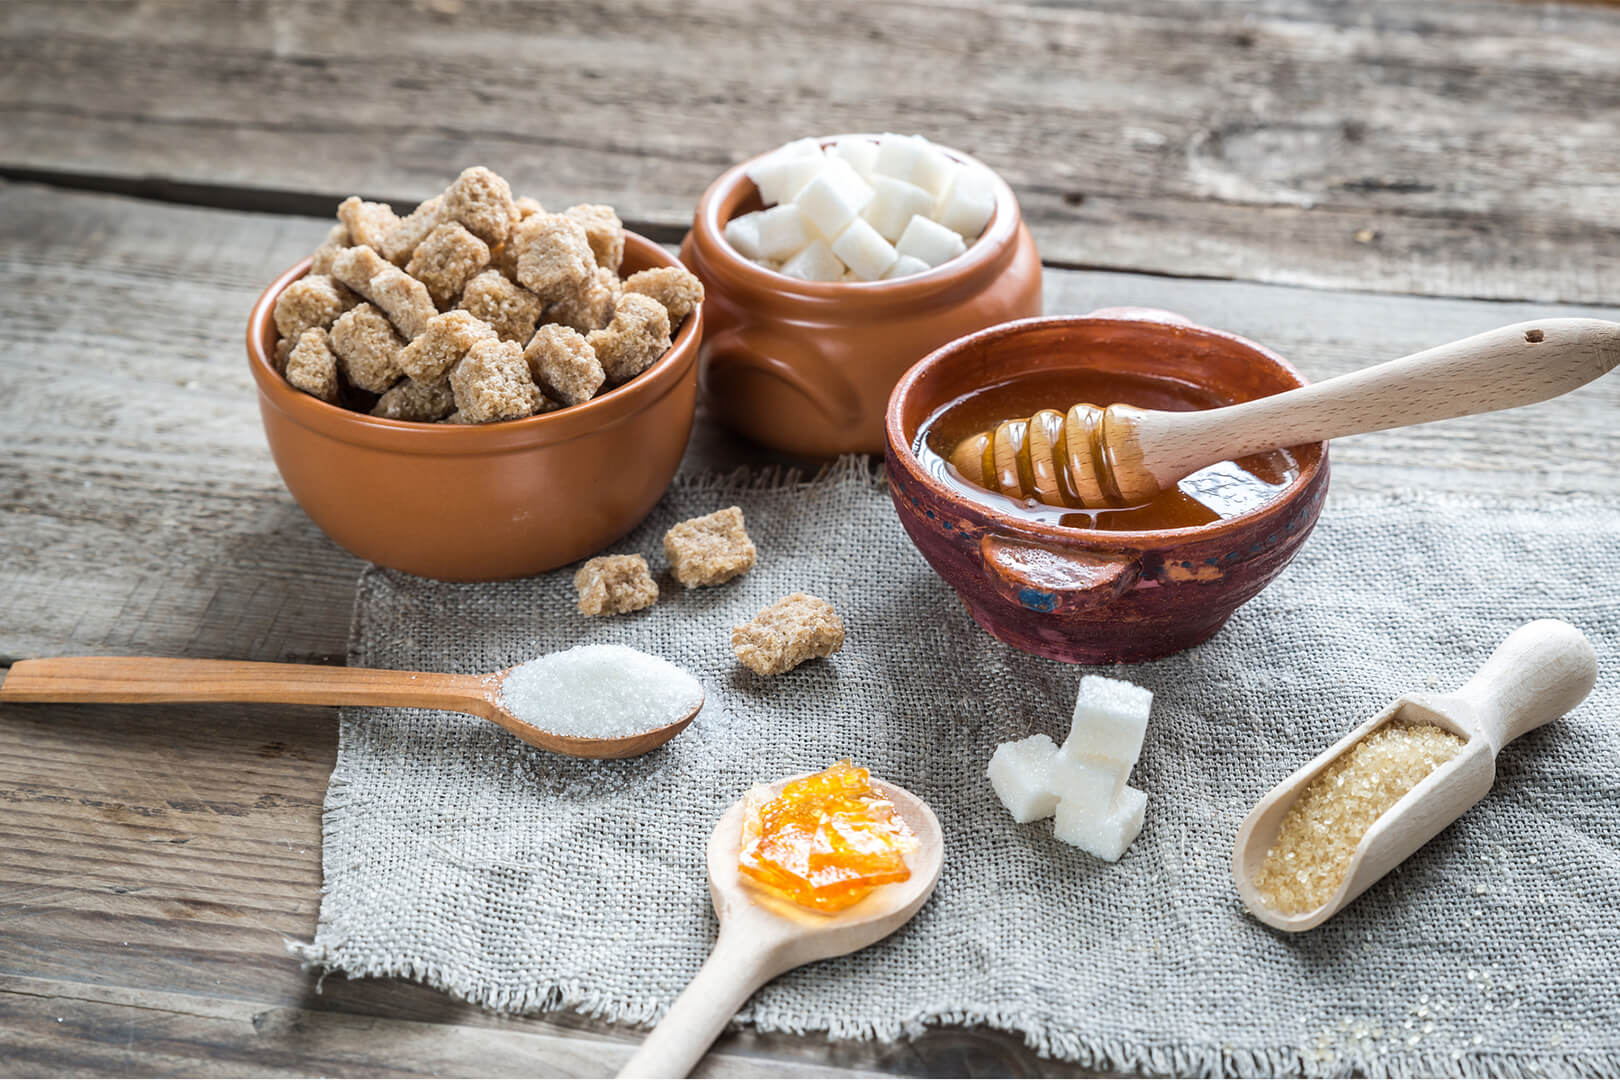 Bowls of brown sugar, white sugar, and honey; used for article on sweeteners